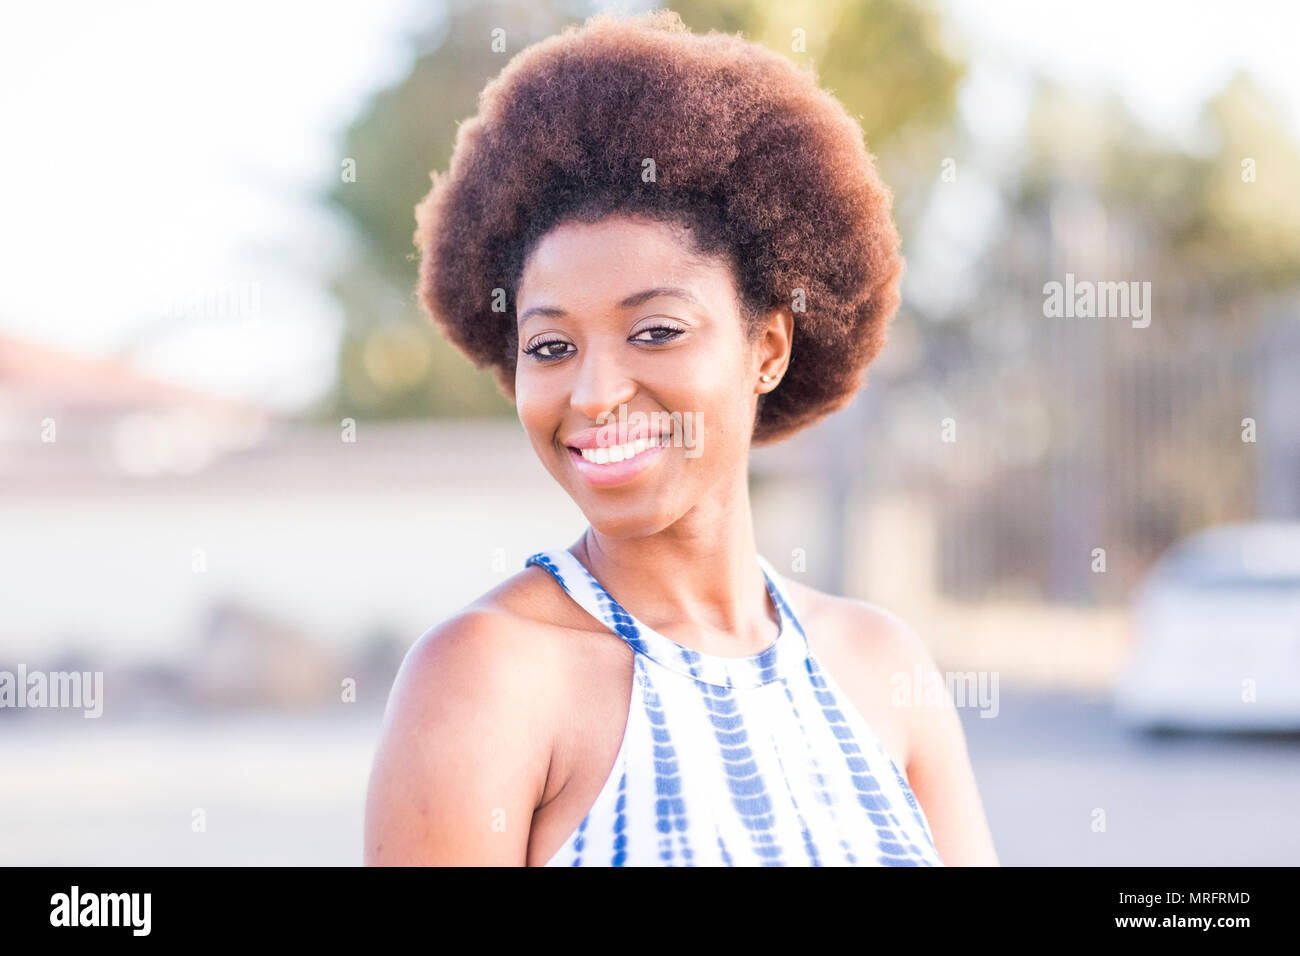 nice beautiful black race african model beautiful face and epression look at the camera. outdoor background portrait with natural light and joy - Stock Image